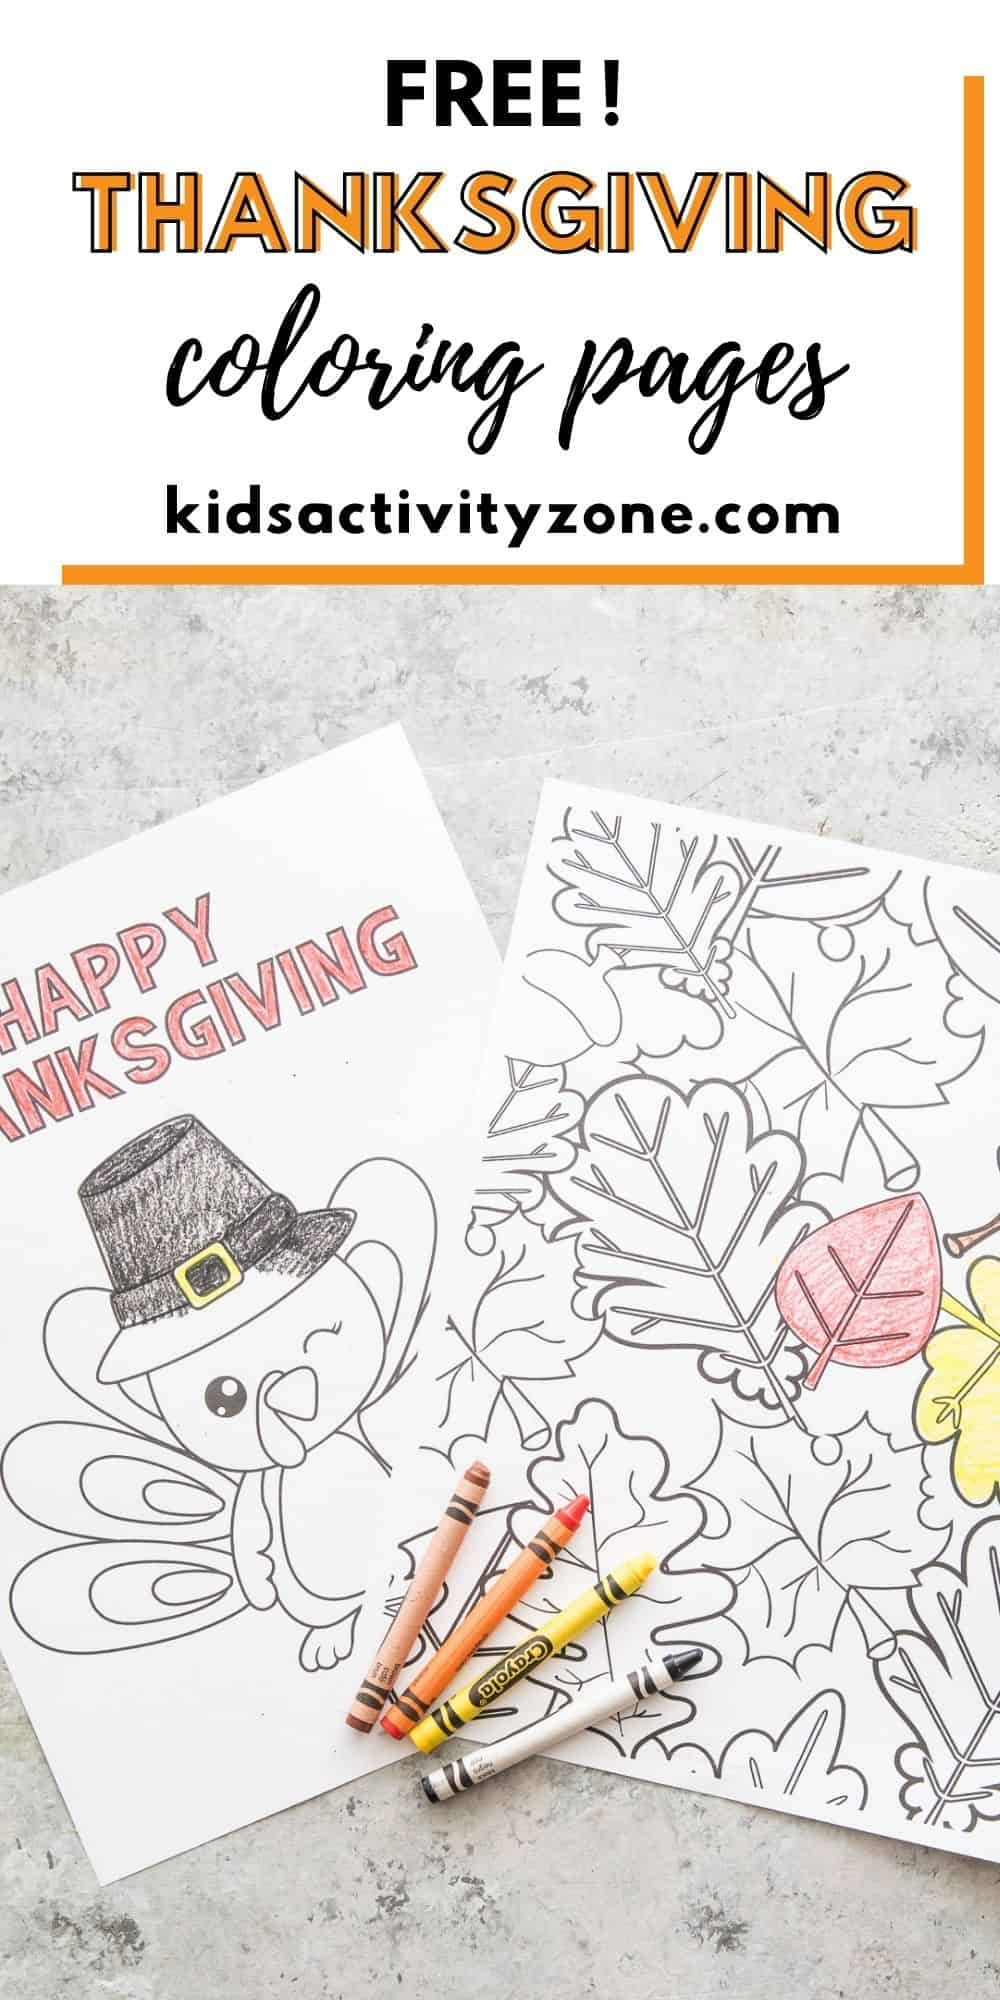 Coloring Pages are so much fun to do for both young and old. These Free Thanksgiving Coloring Pages are perfect for your meals, parties and more. Simply print them out and let everyone color!